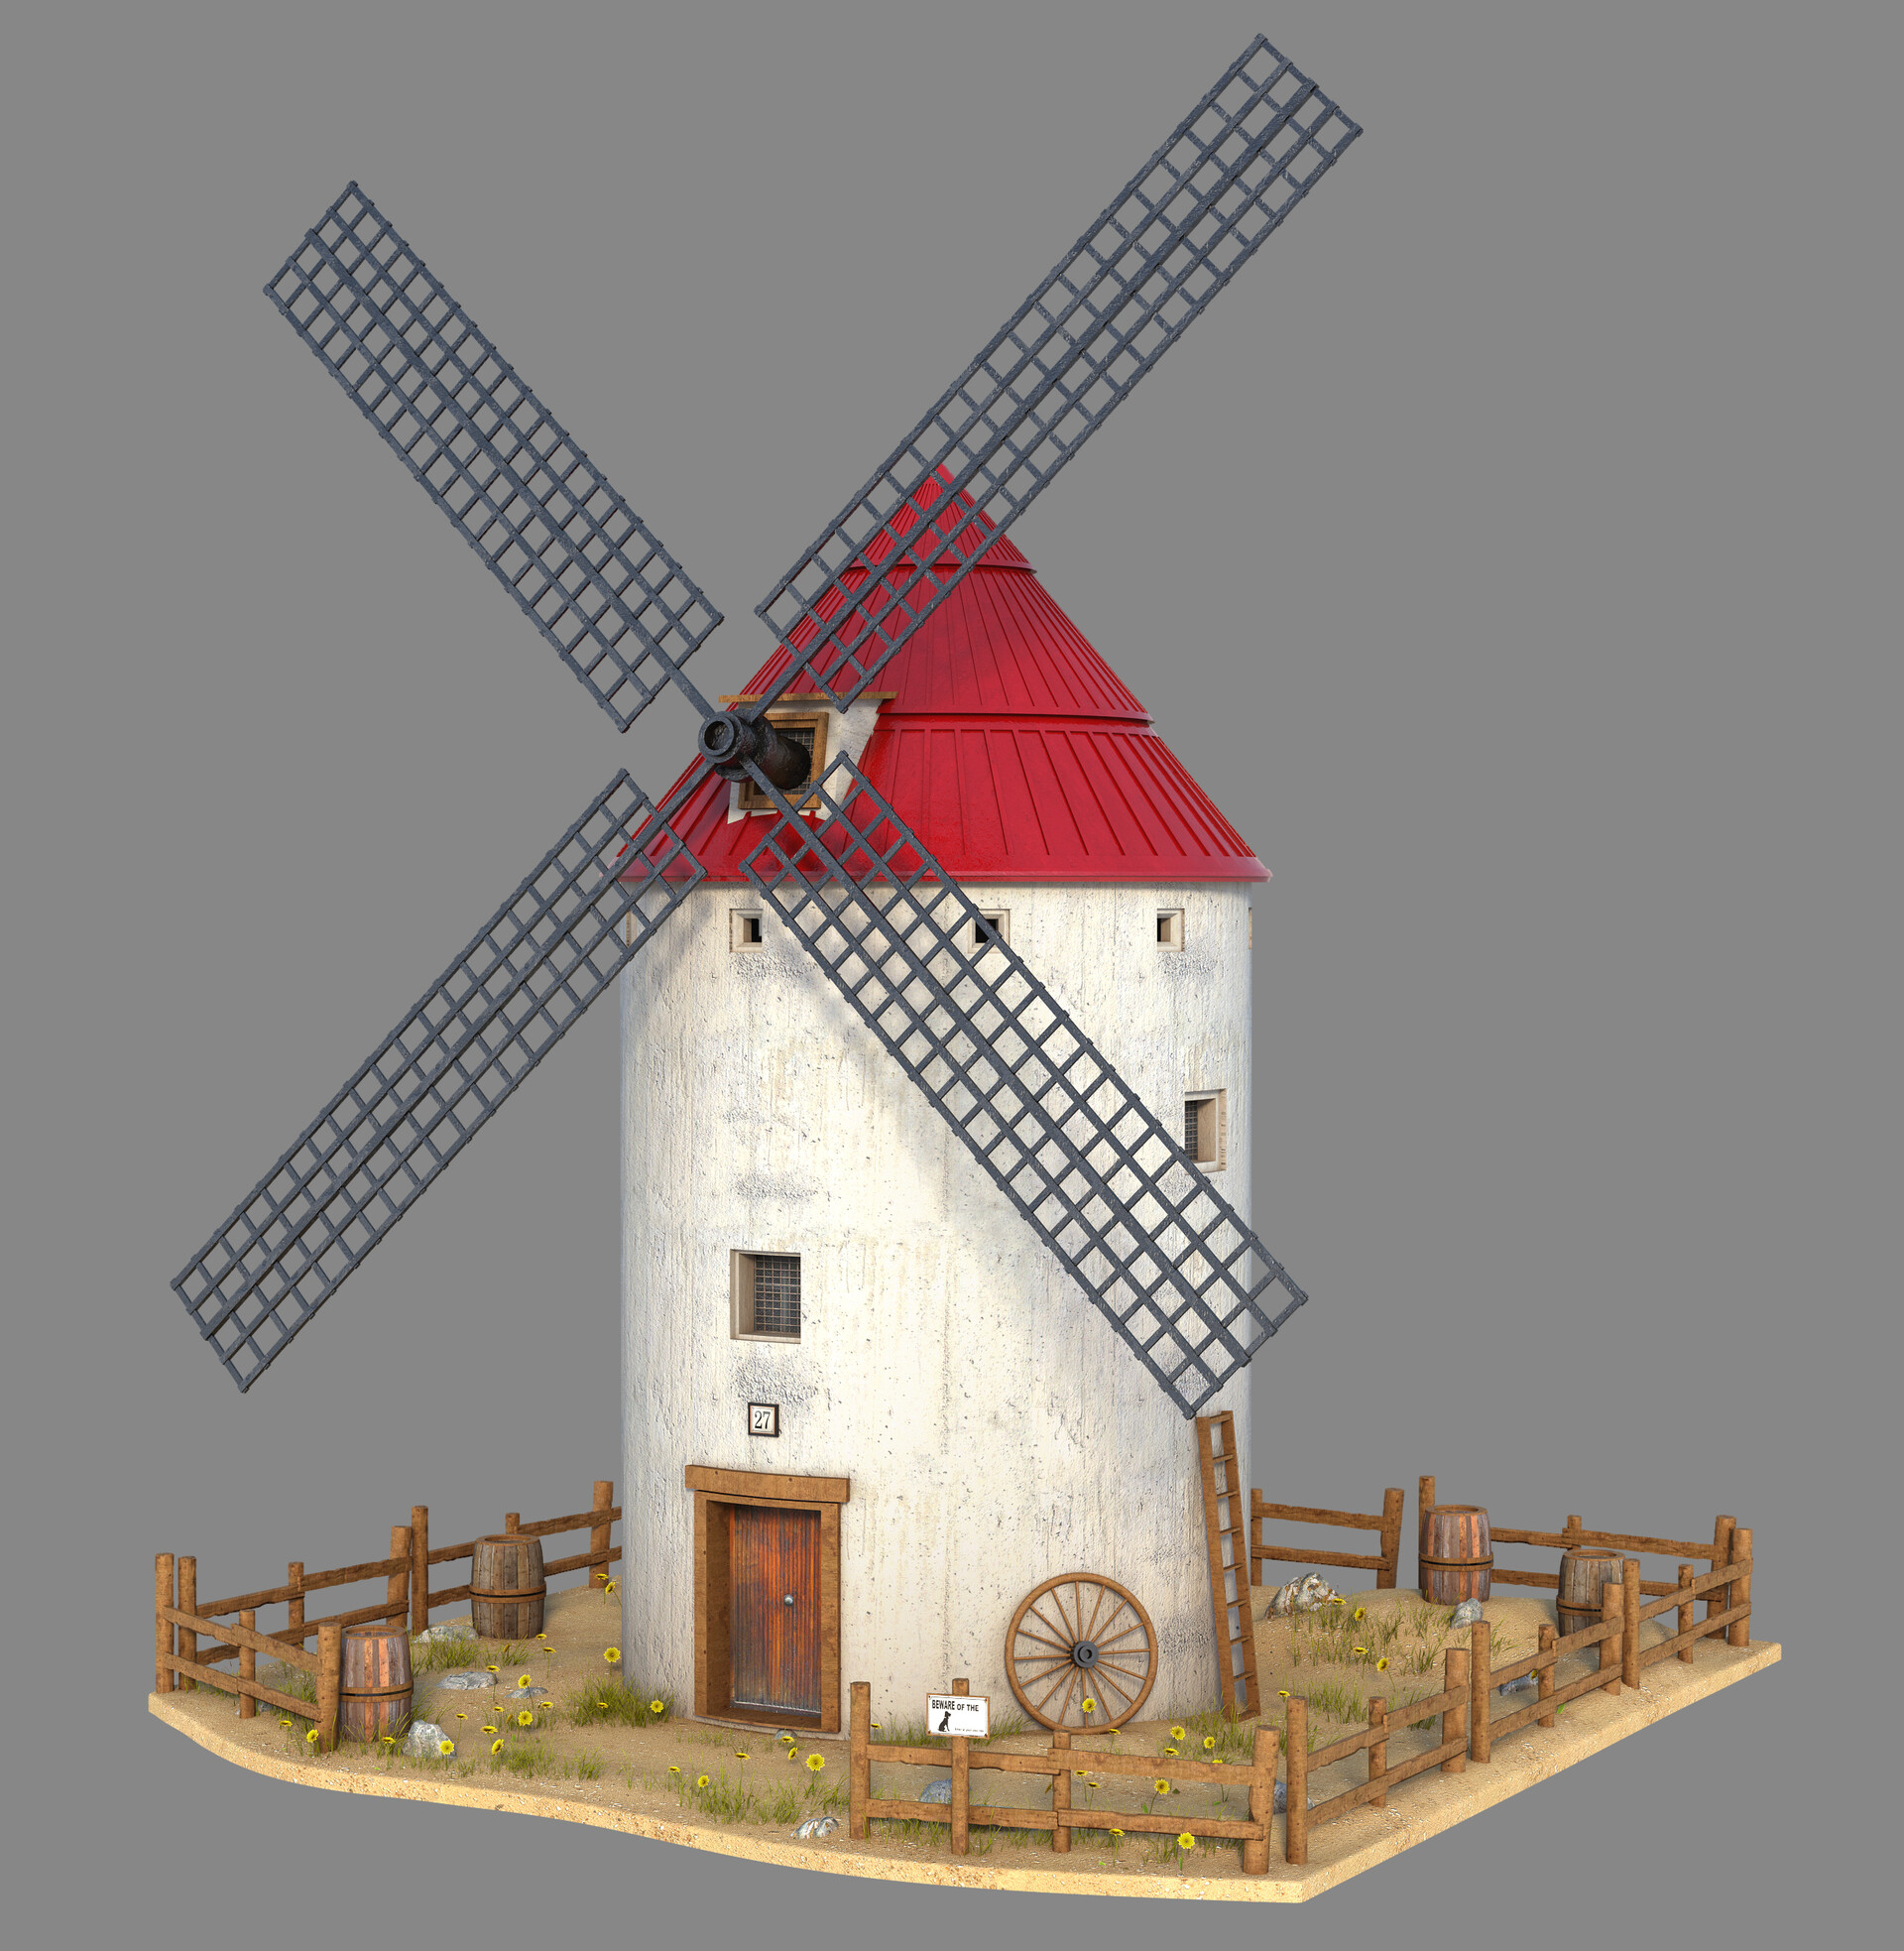 Marc mons spanish windmill by marcmons007 dckof28